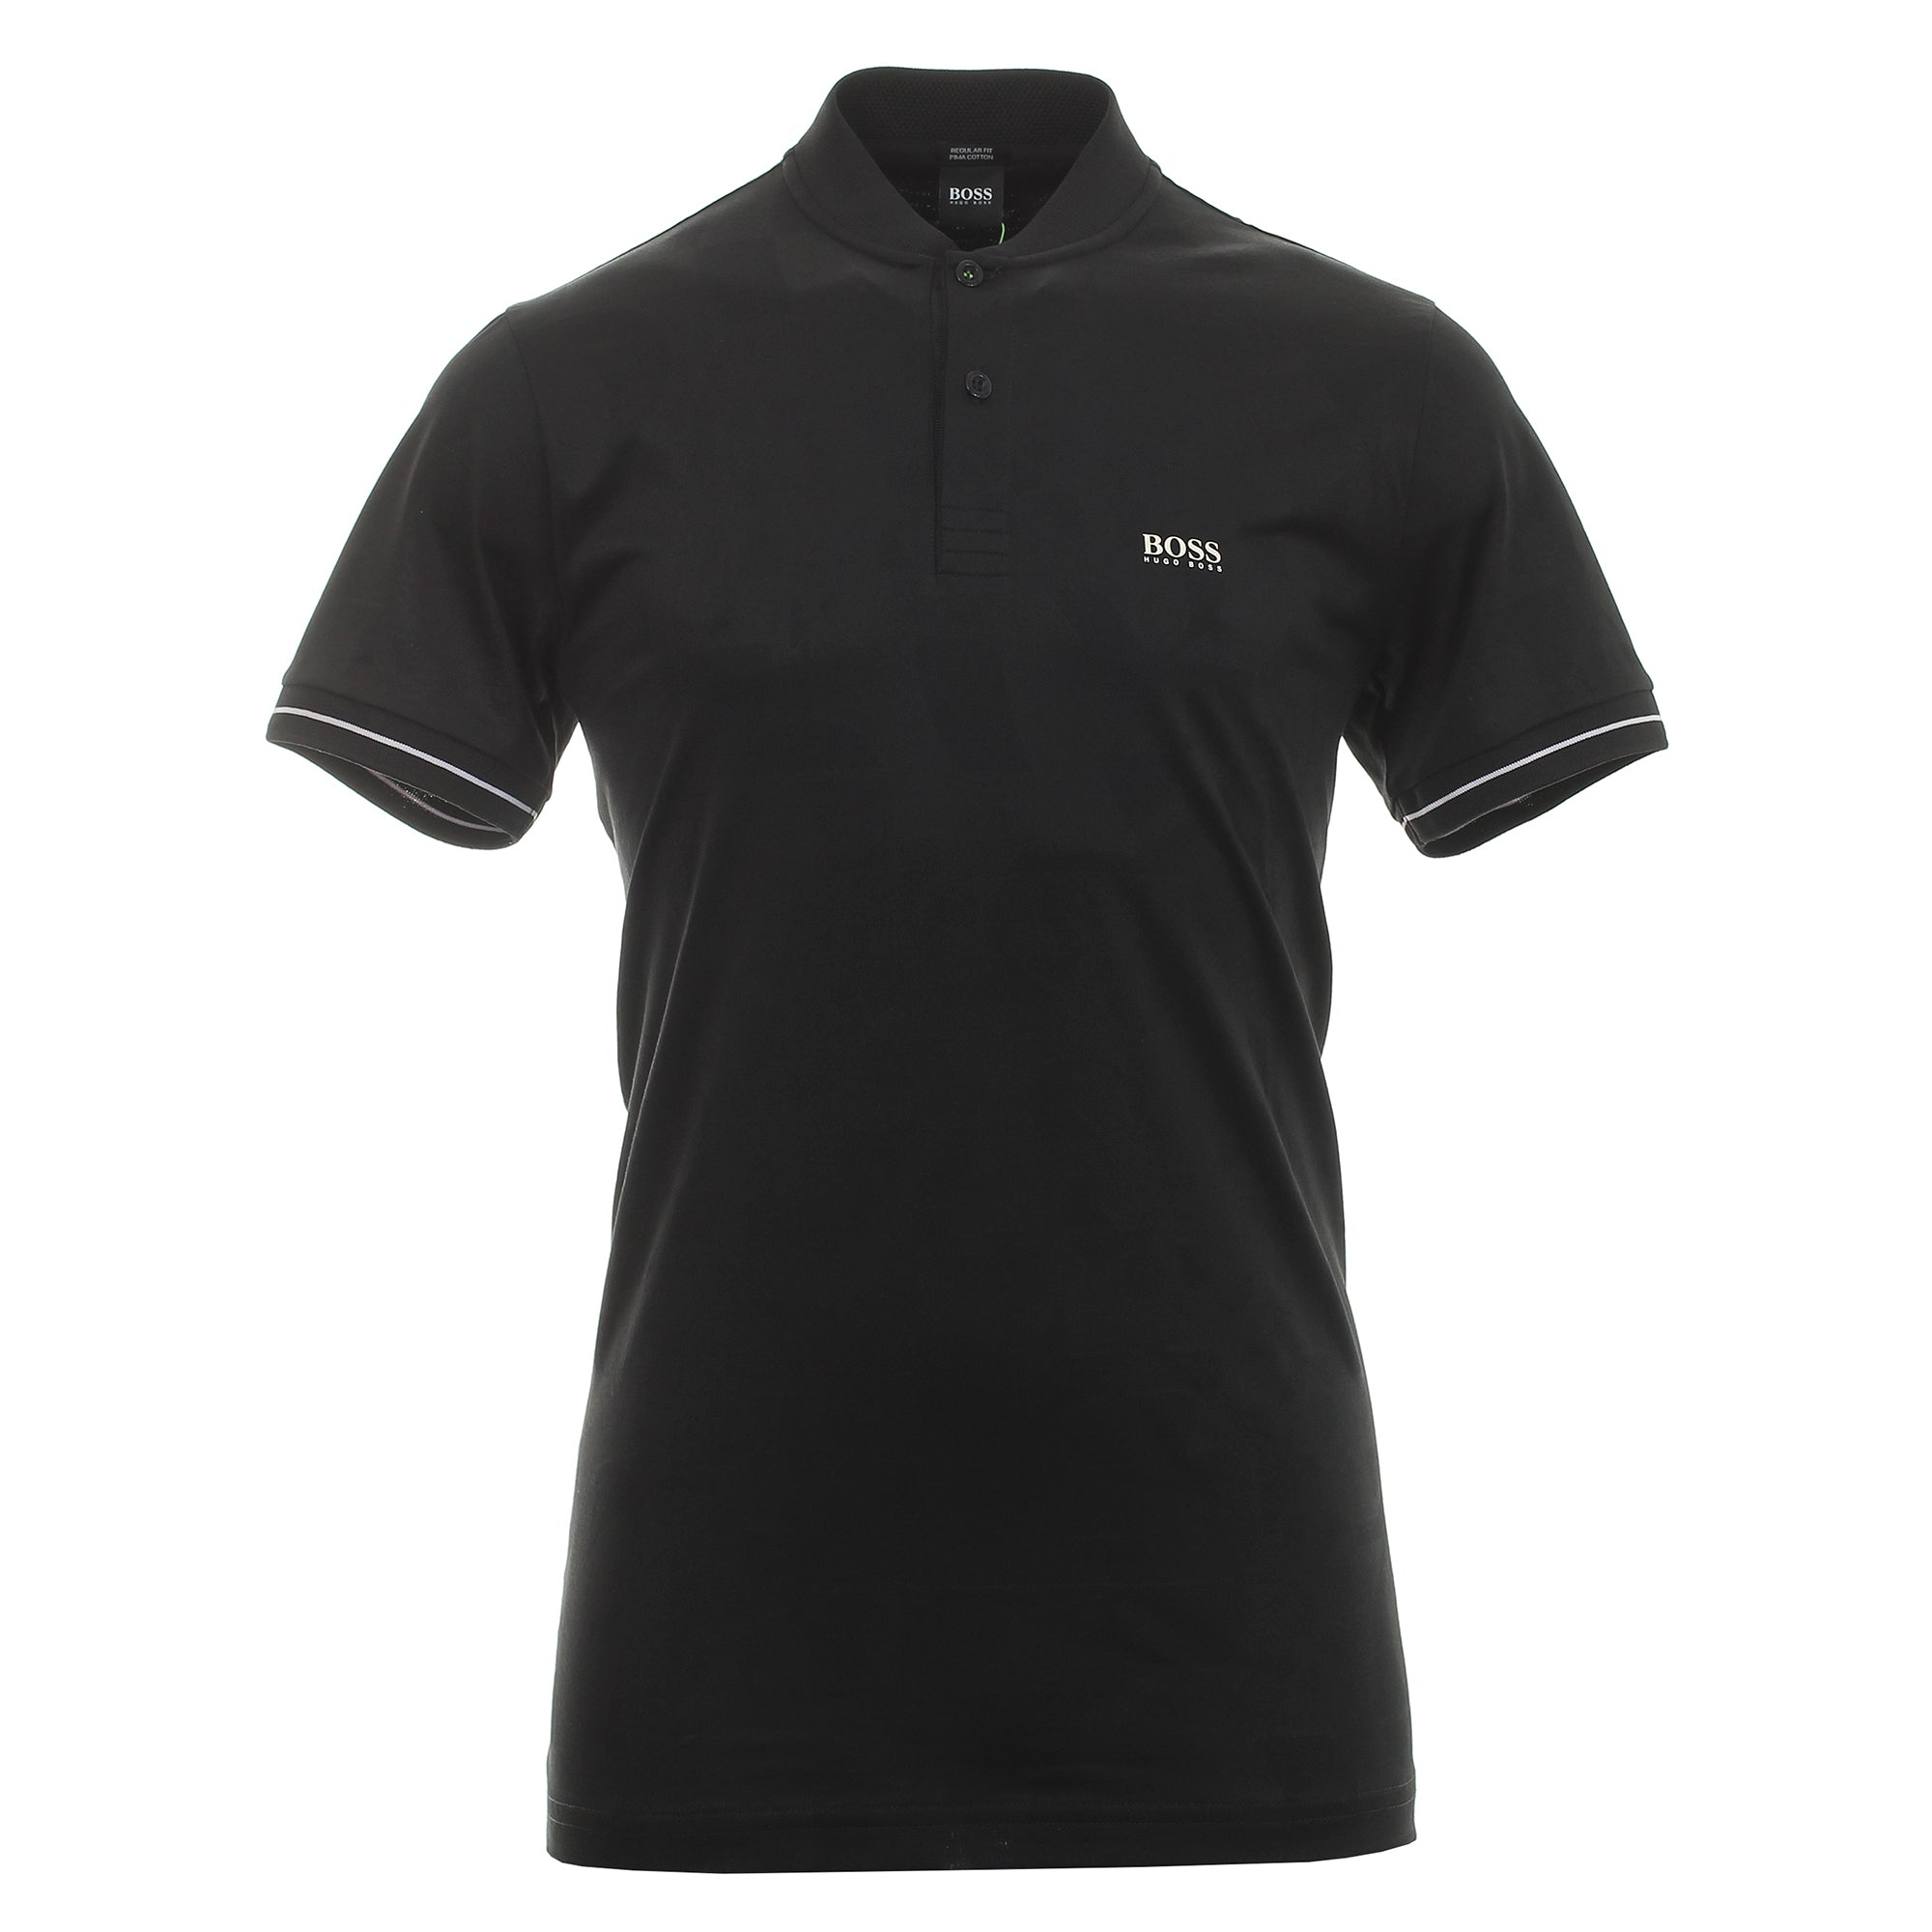 BOSS Pariq Polo Shirt